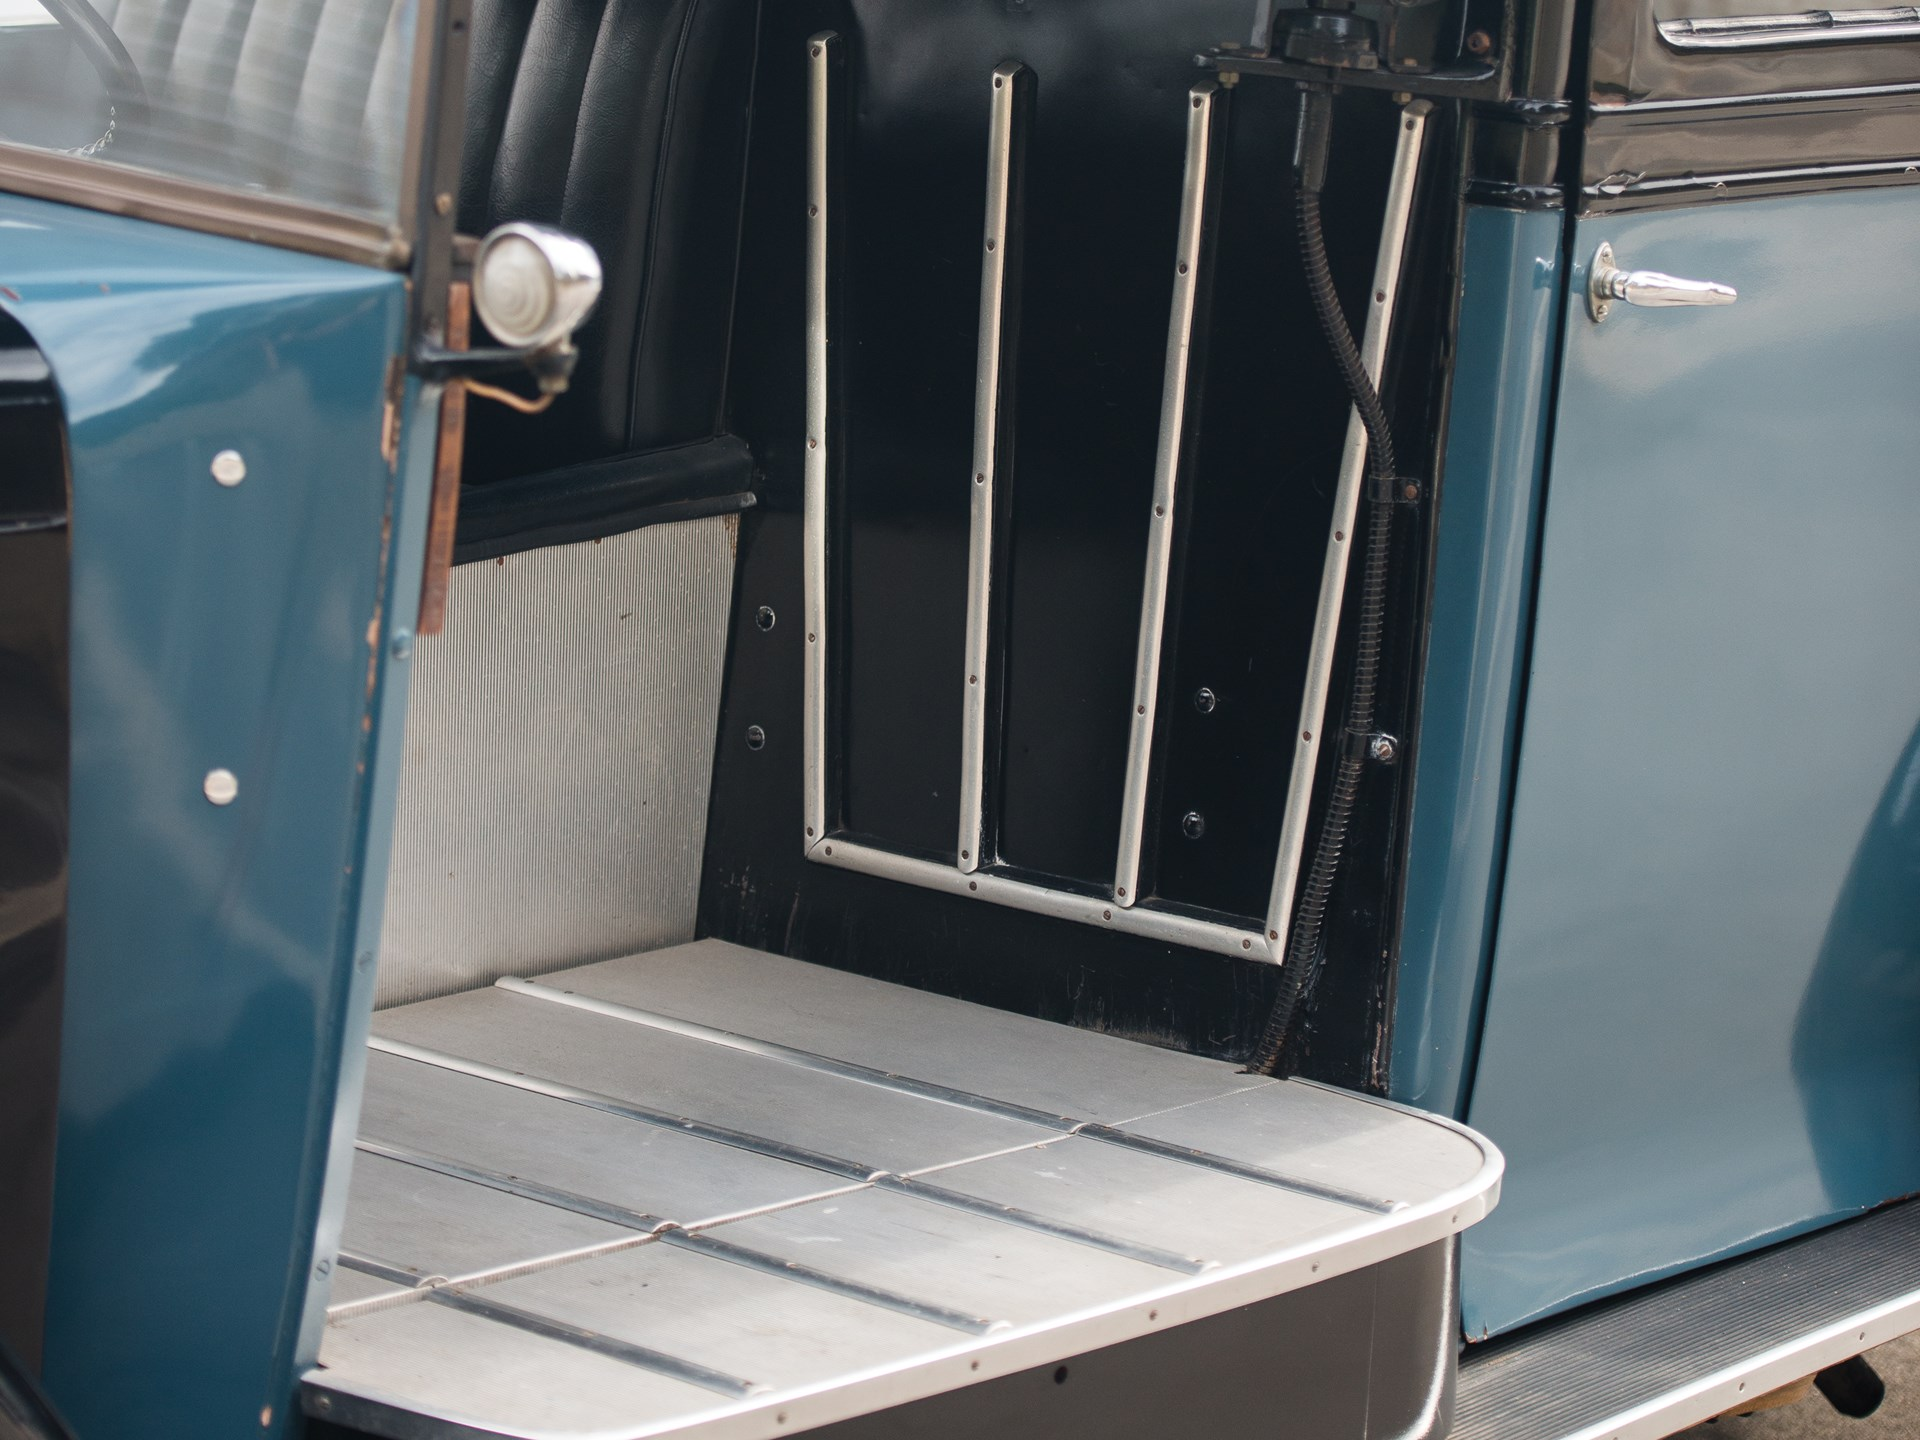 1936 Austin Heavy 12-4 Low-Loading Taxi by Strachan